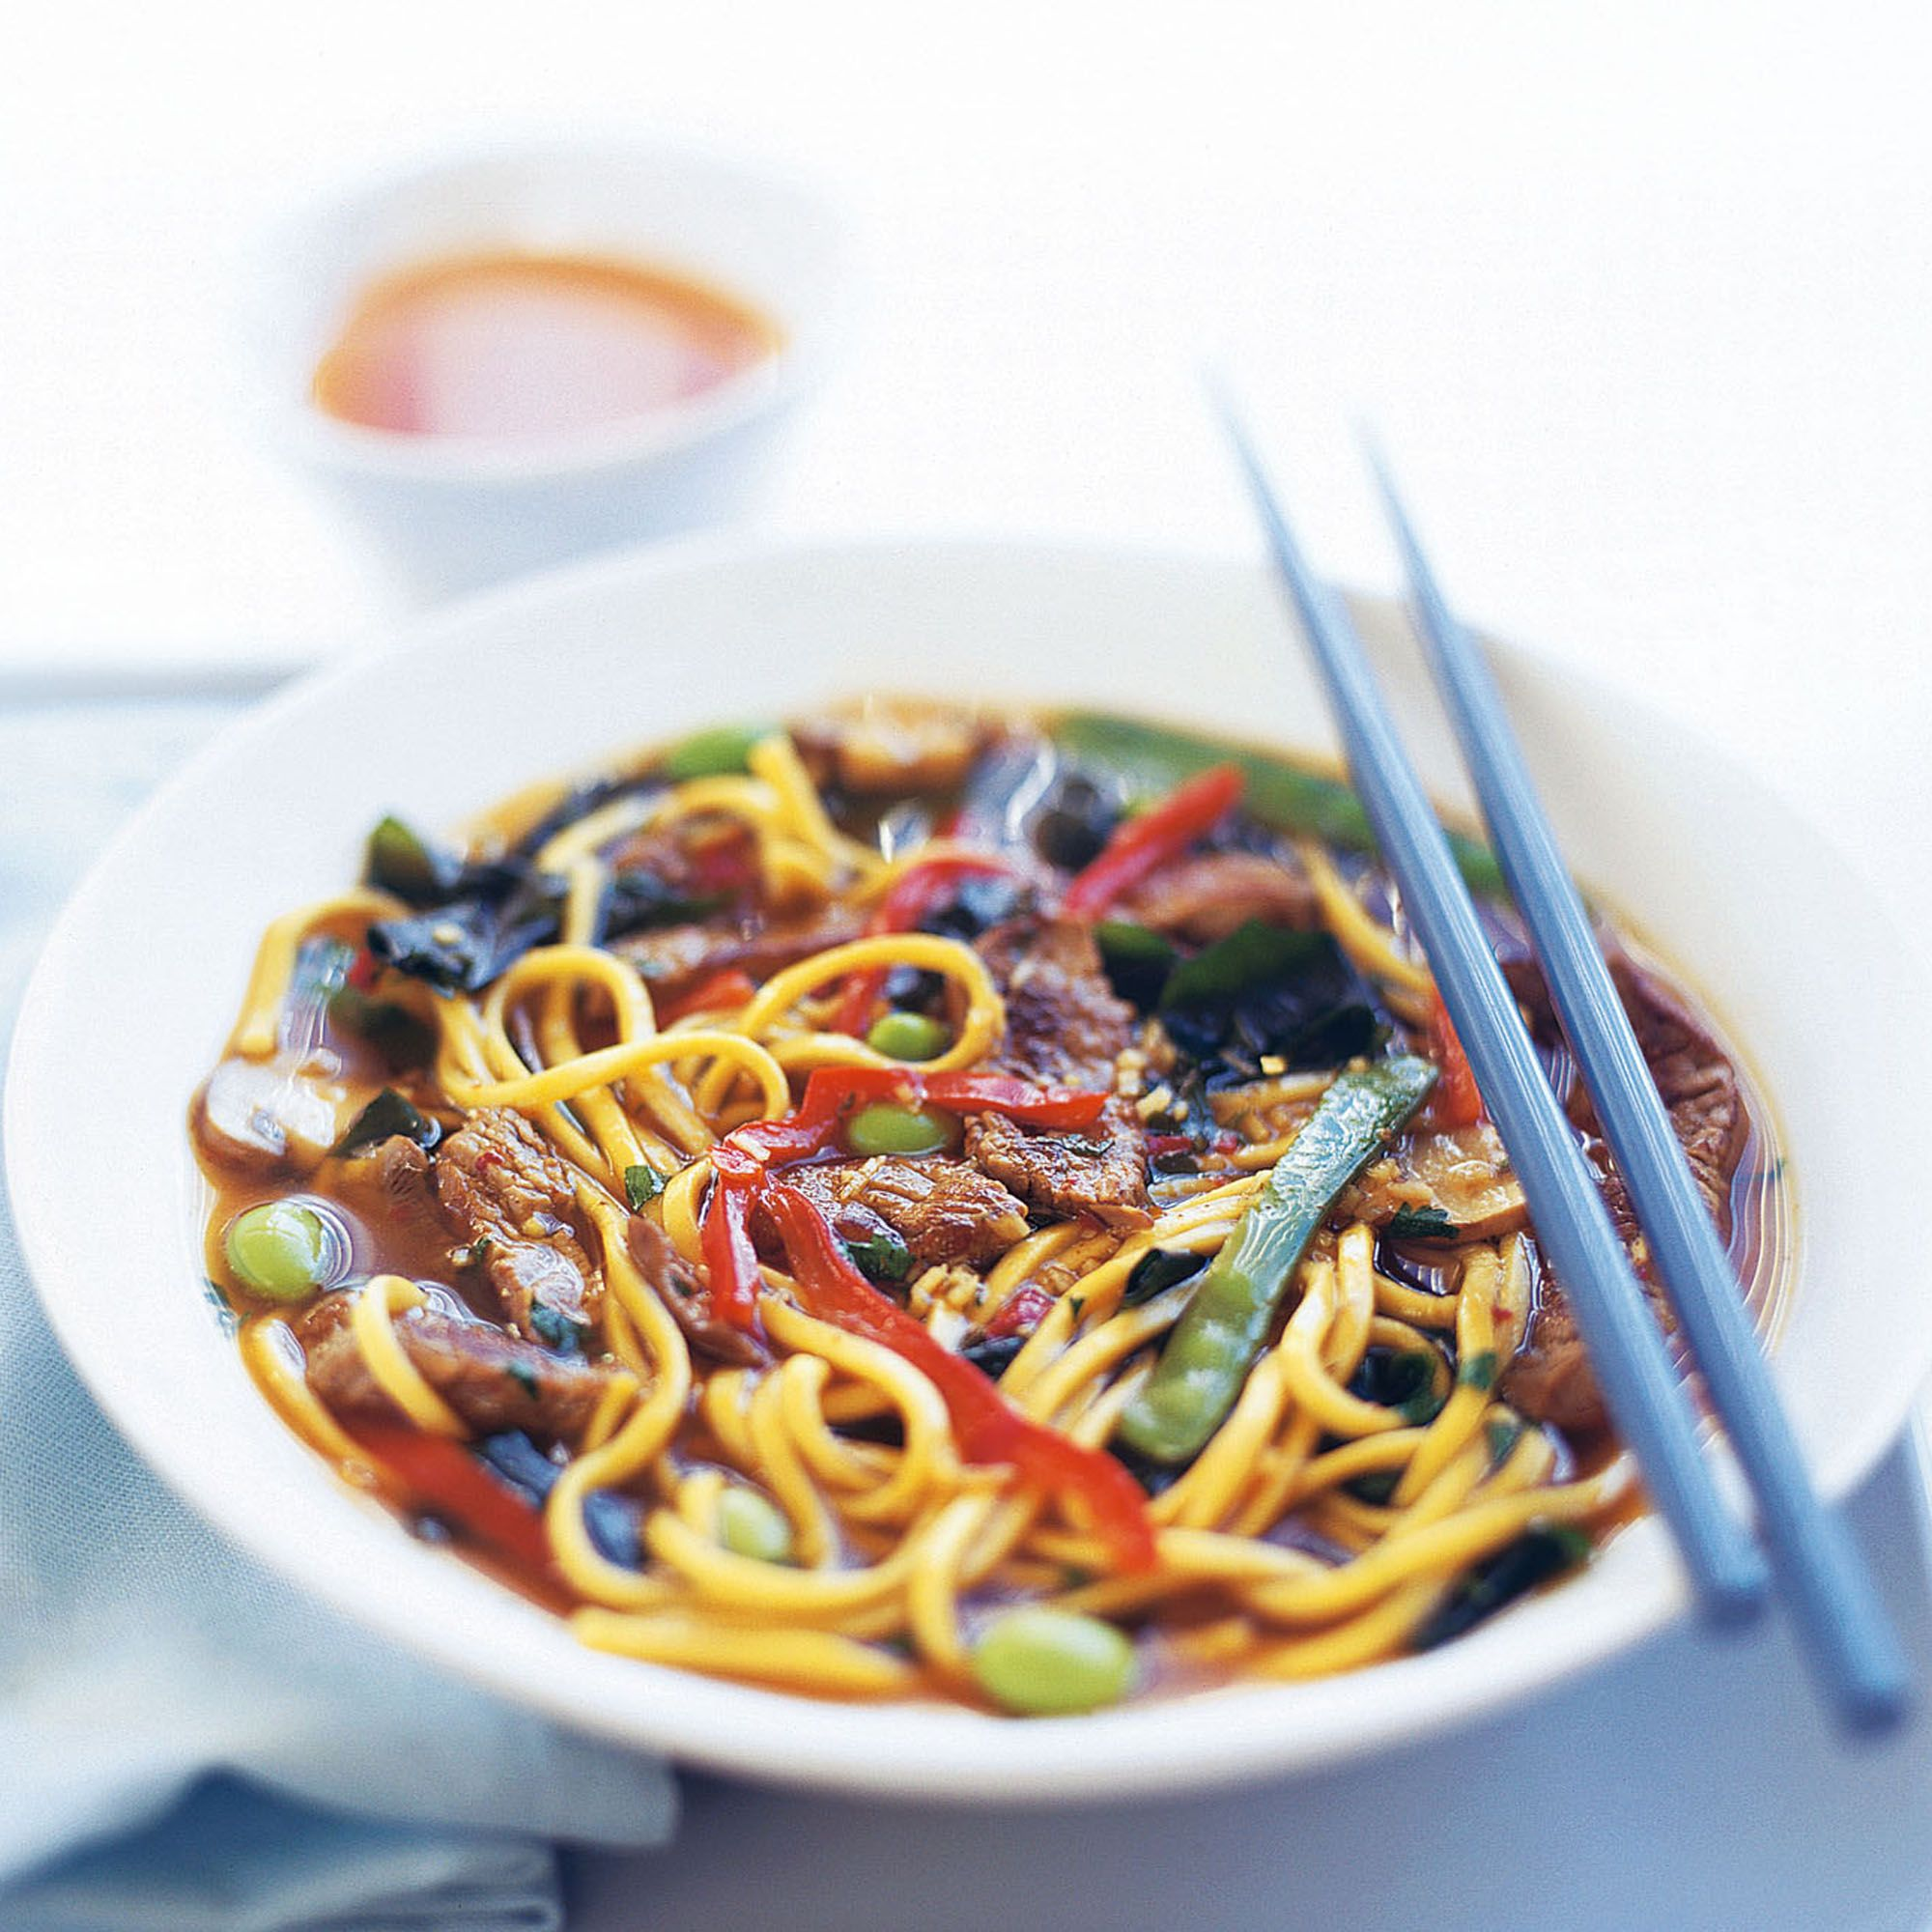 Beef and ginger broth with noodles recipe noodle beef and ginger broth with noodles healthy asian recipeshealthy foodhealthy forumfinder Image collections